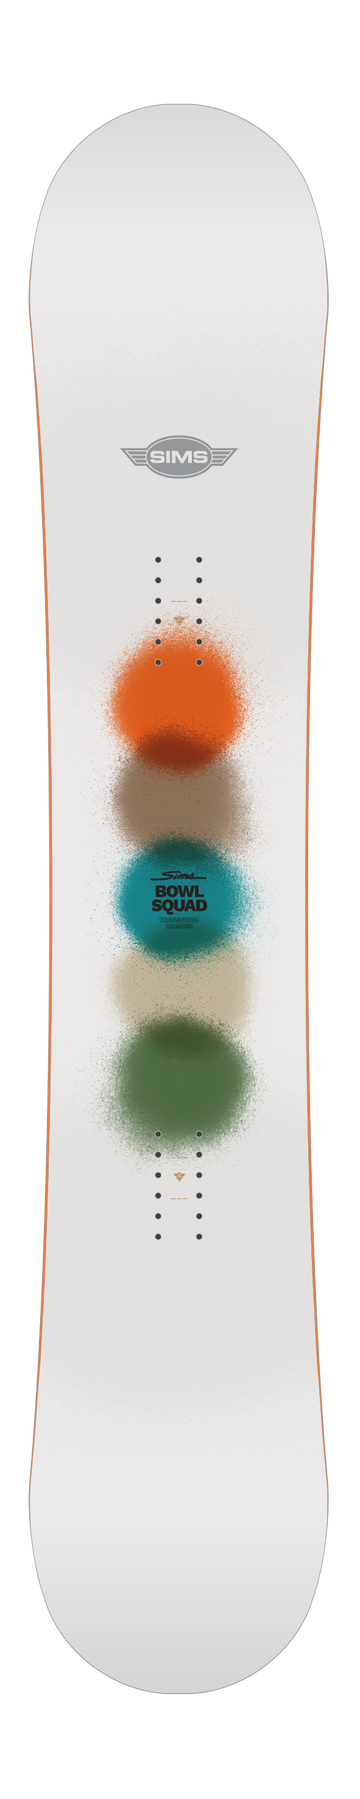 2021 Sims Bowl Squad Snowboard in White